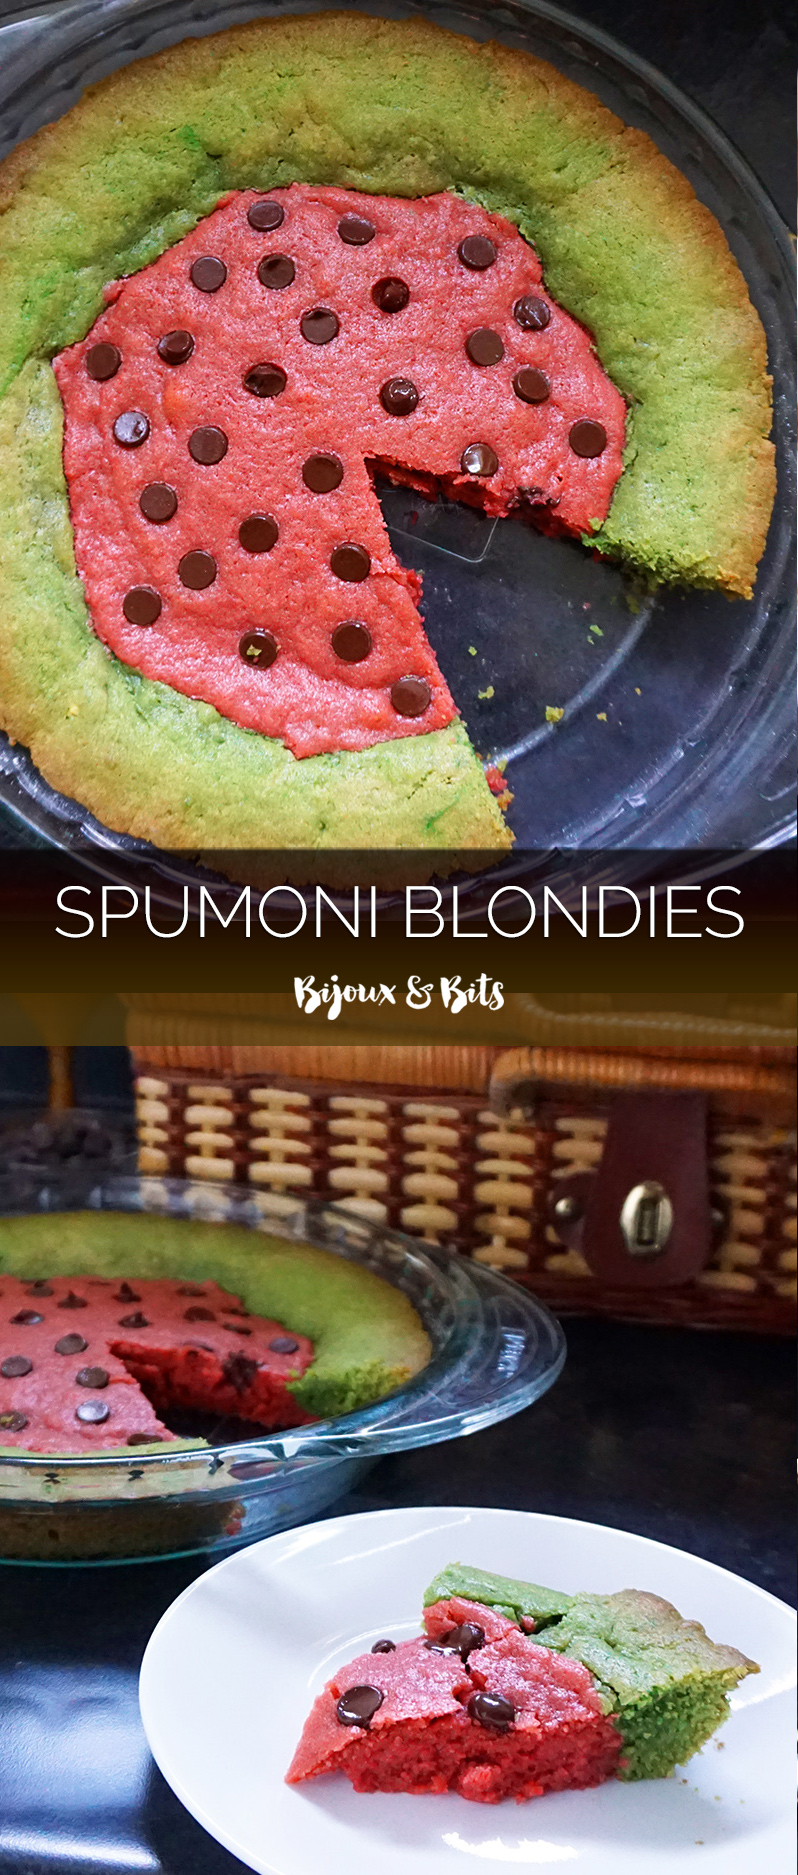 Spumoni blondies (watermelon-shaped!) from @bijouxandbits #blondies #summer